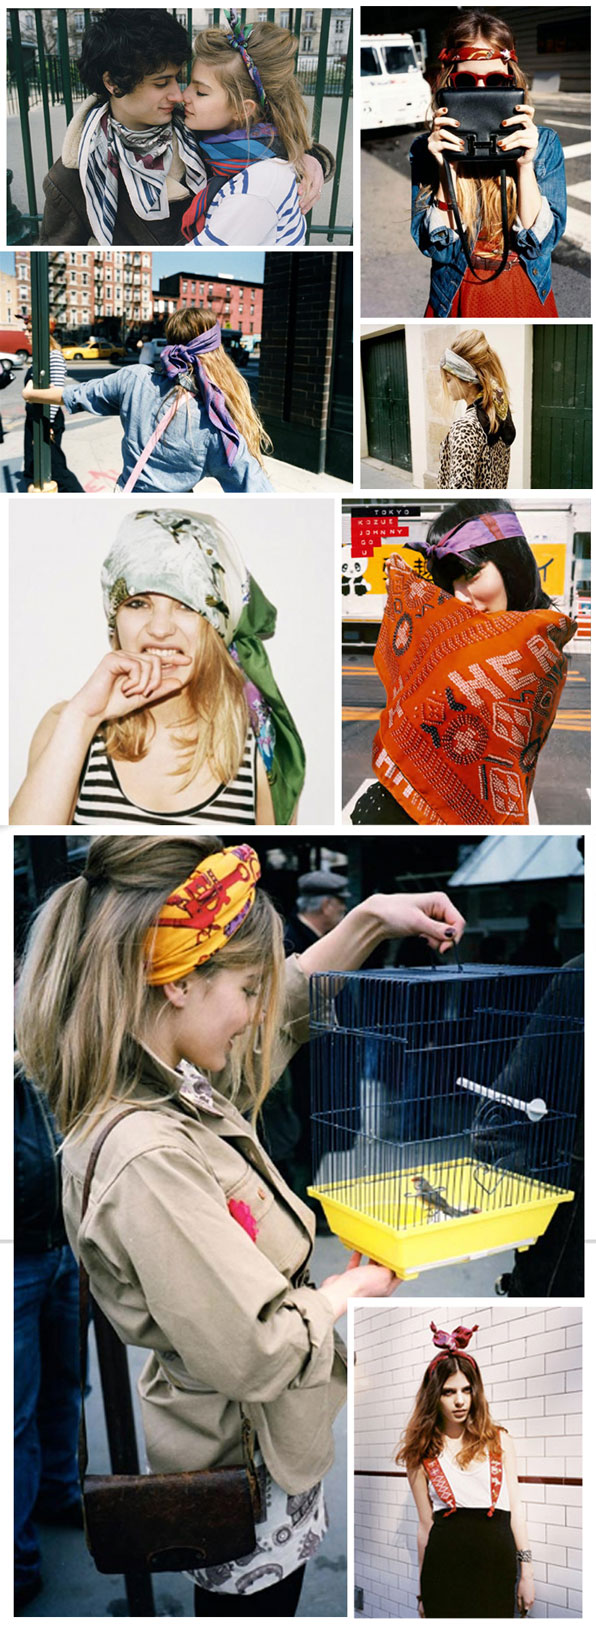 Hermes---I-Love-My-Scarf.-mood